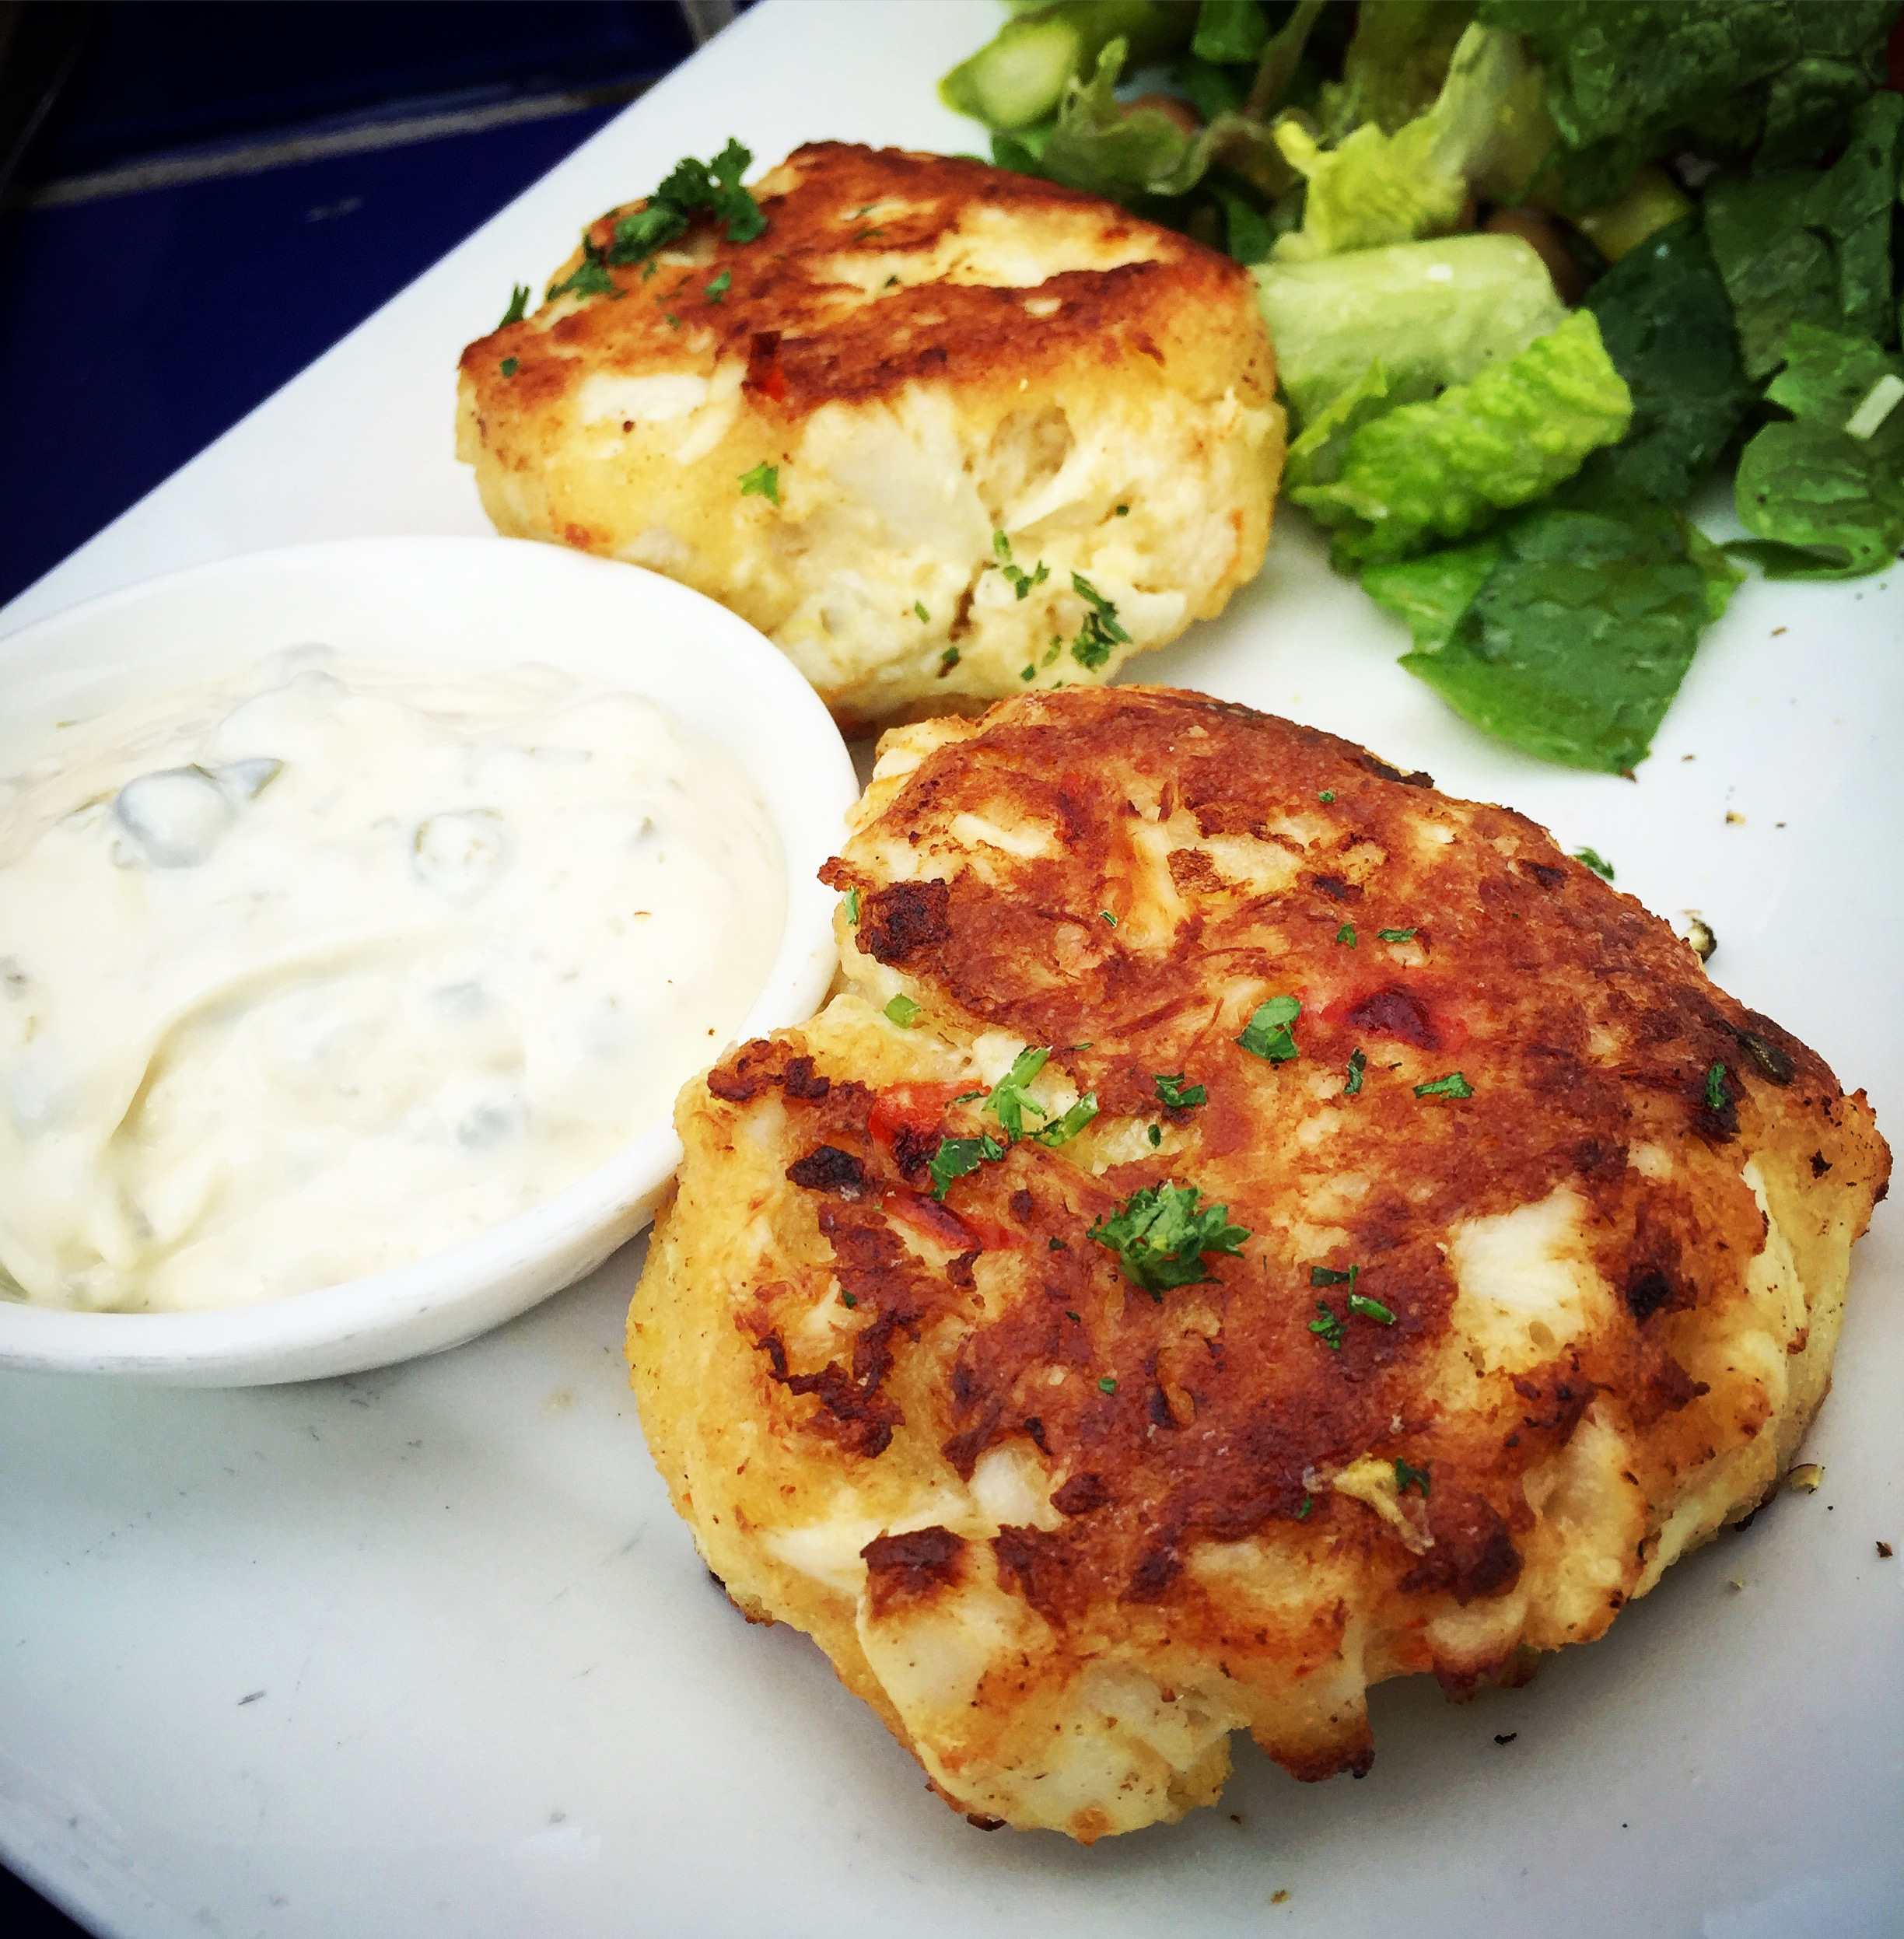 The Calypso Crabcakes with a caper sauce are the fluffiest and most loaded ones I've ever had (just look at how large that crab meat is!)